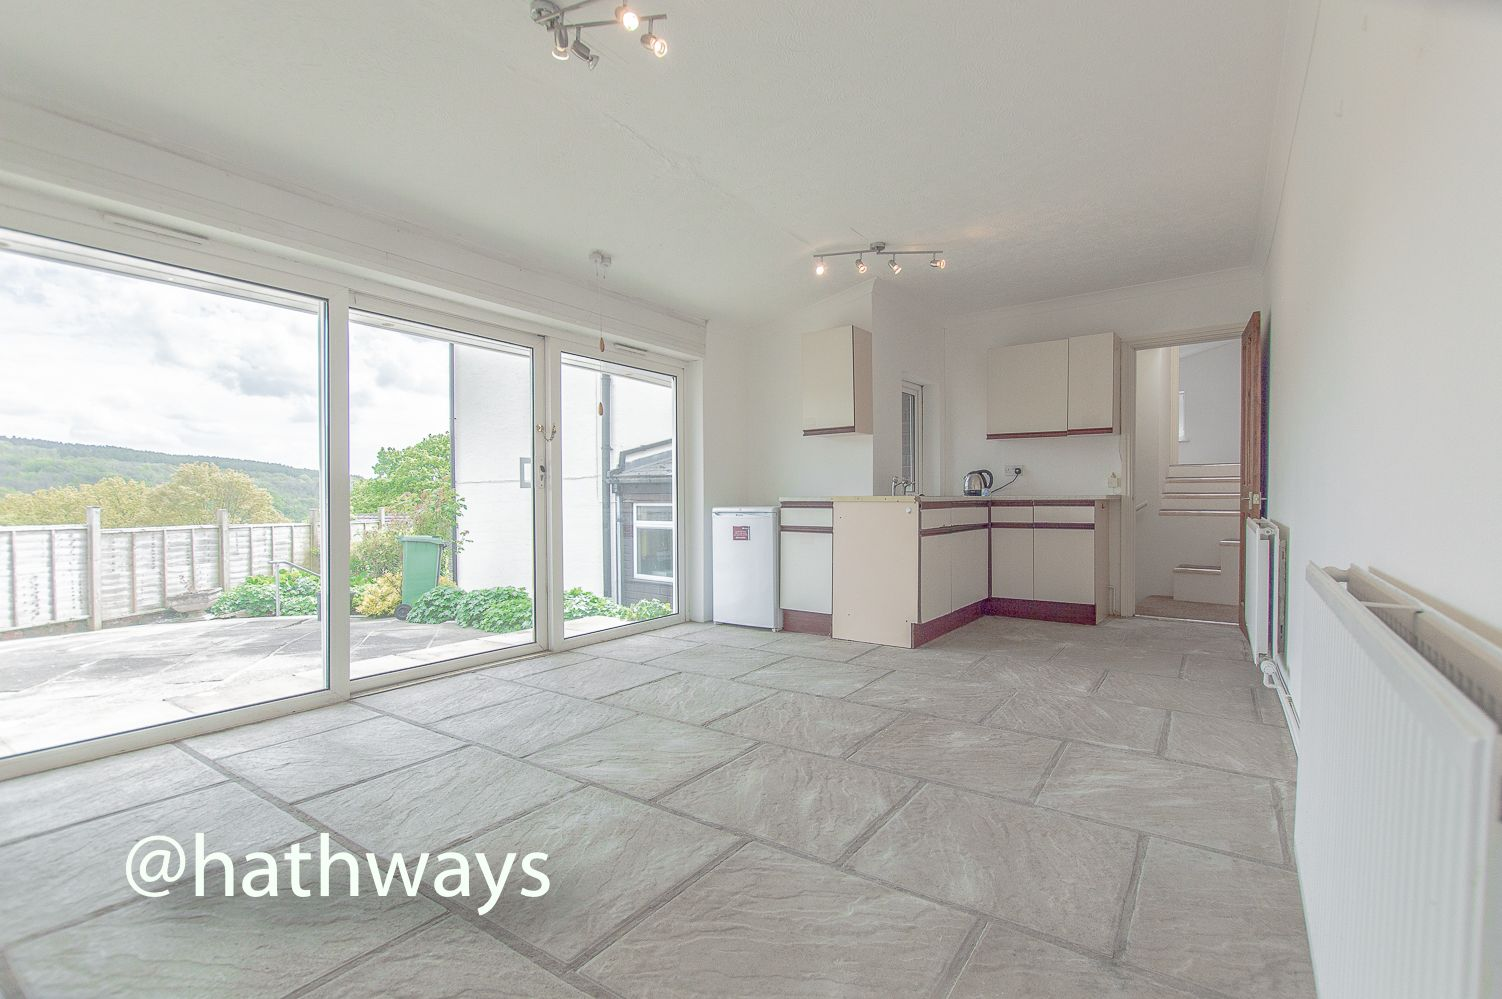 4 bed house for sale in Lower Stoney Road  - Property Image 36